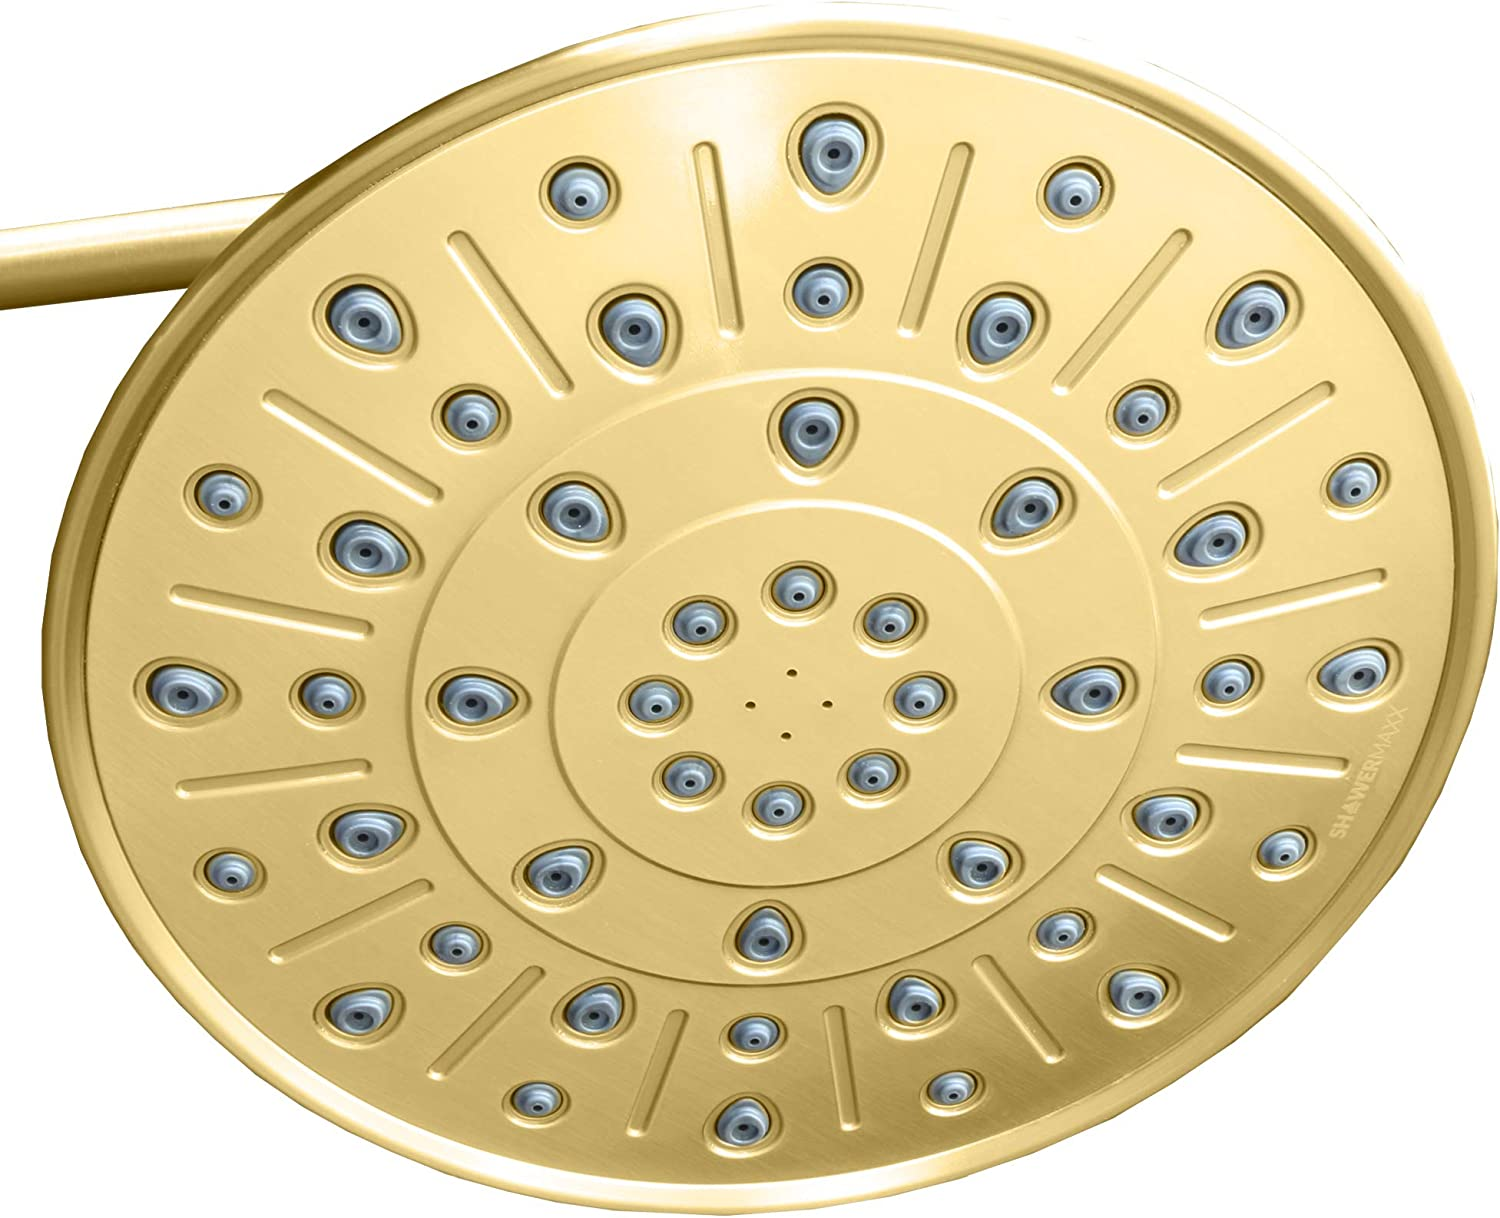 ShowerMaxx   Elite Series   8 inch Round High Pressure Rainfall Shower Head   MAXX-imize Your Rainfall Experience with Easy-to-Remove Flow Restrictor Rain Showerhead   Polished Brass gold Finish